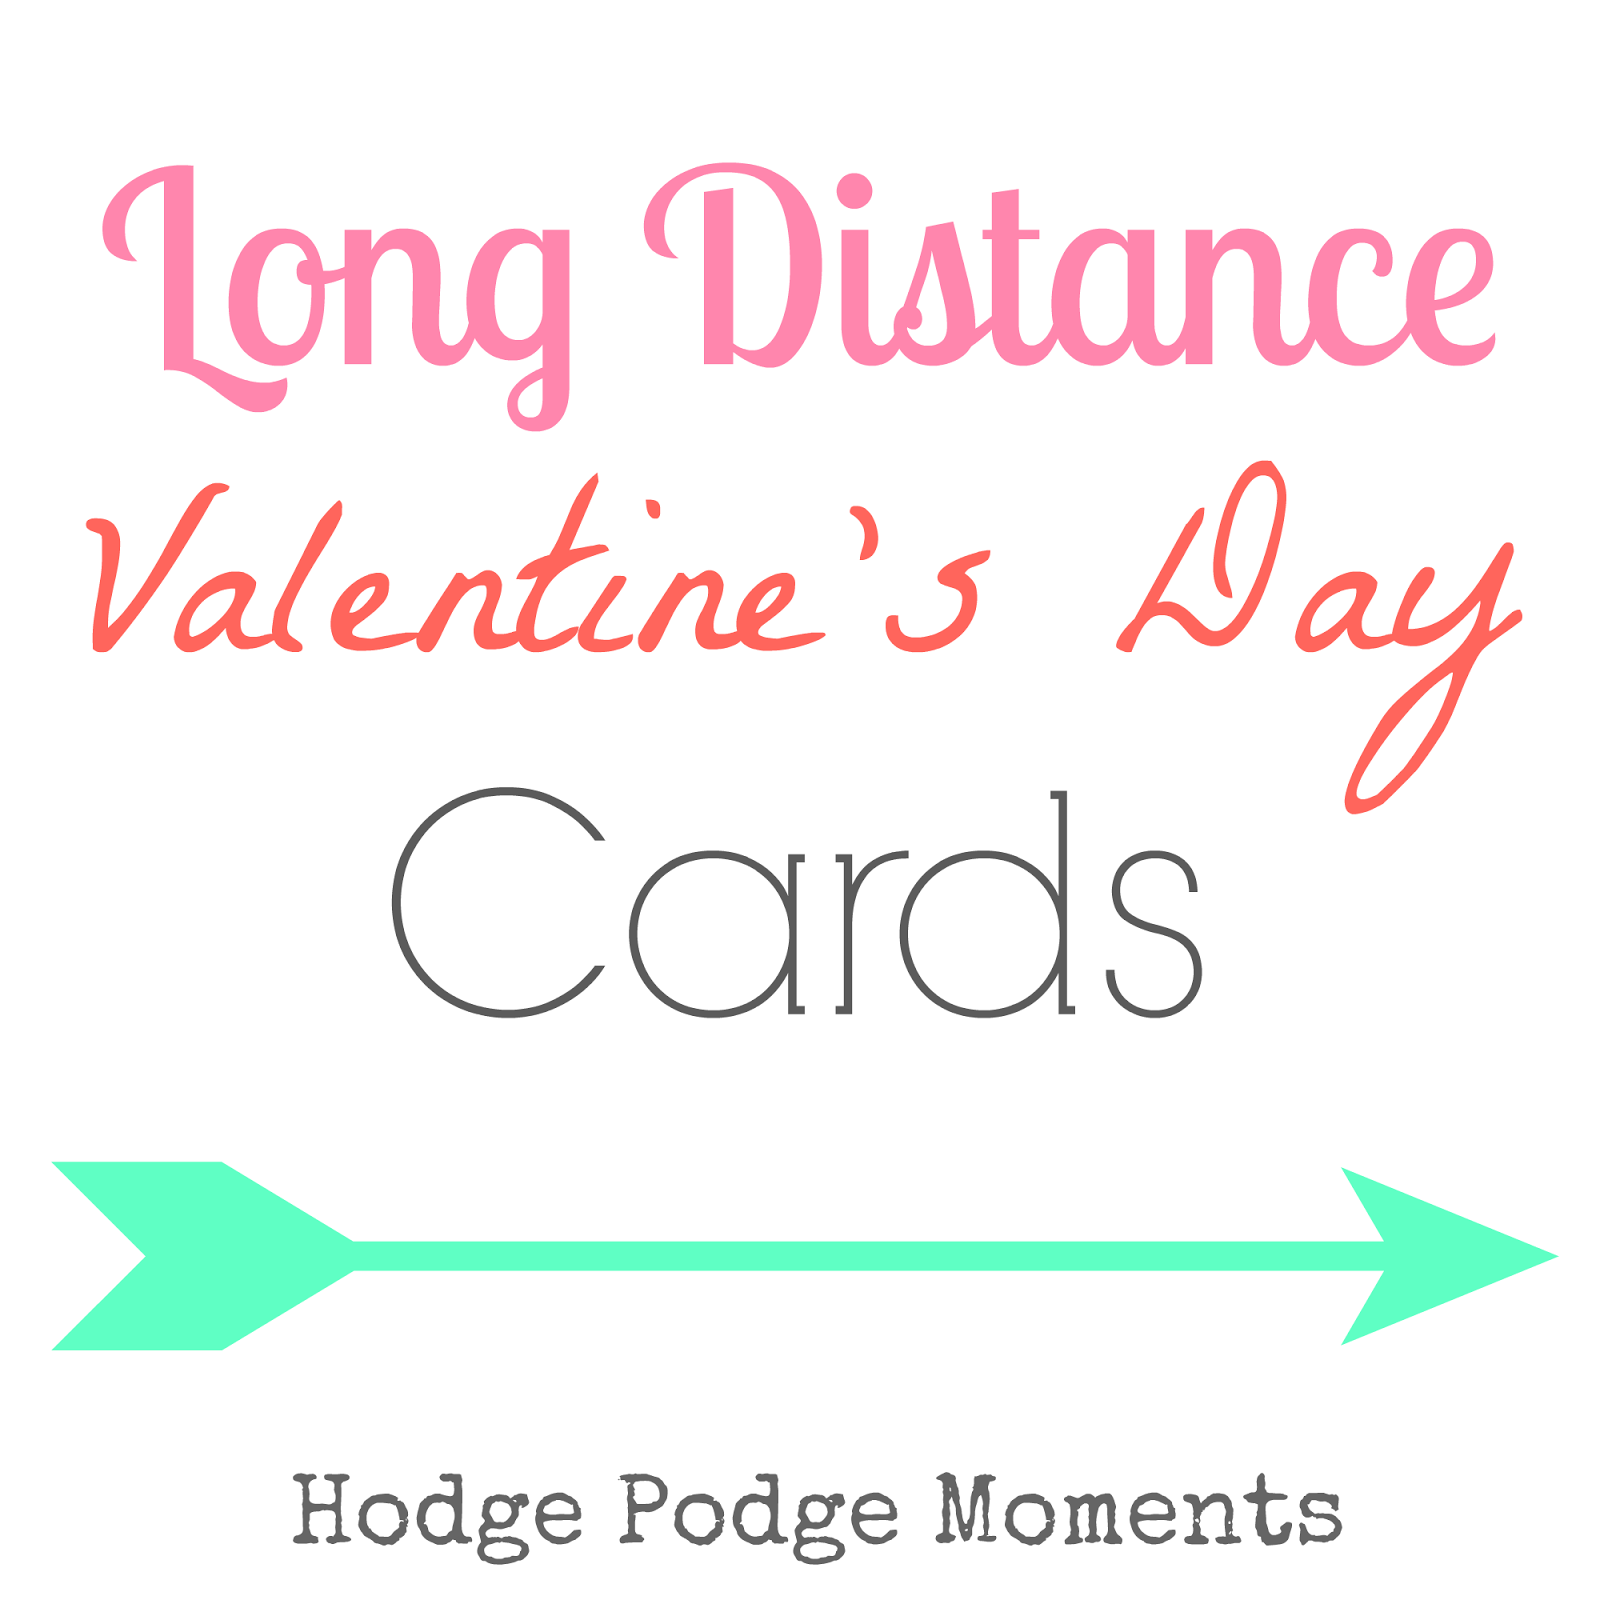 http://www.hodgepodgemoments.com/2015/02/long-distance-valentines-day-cards.html